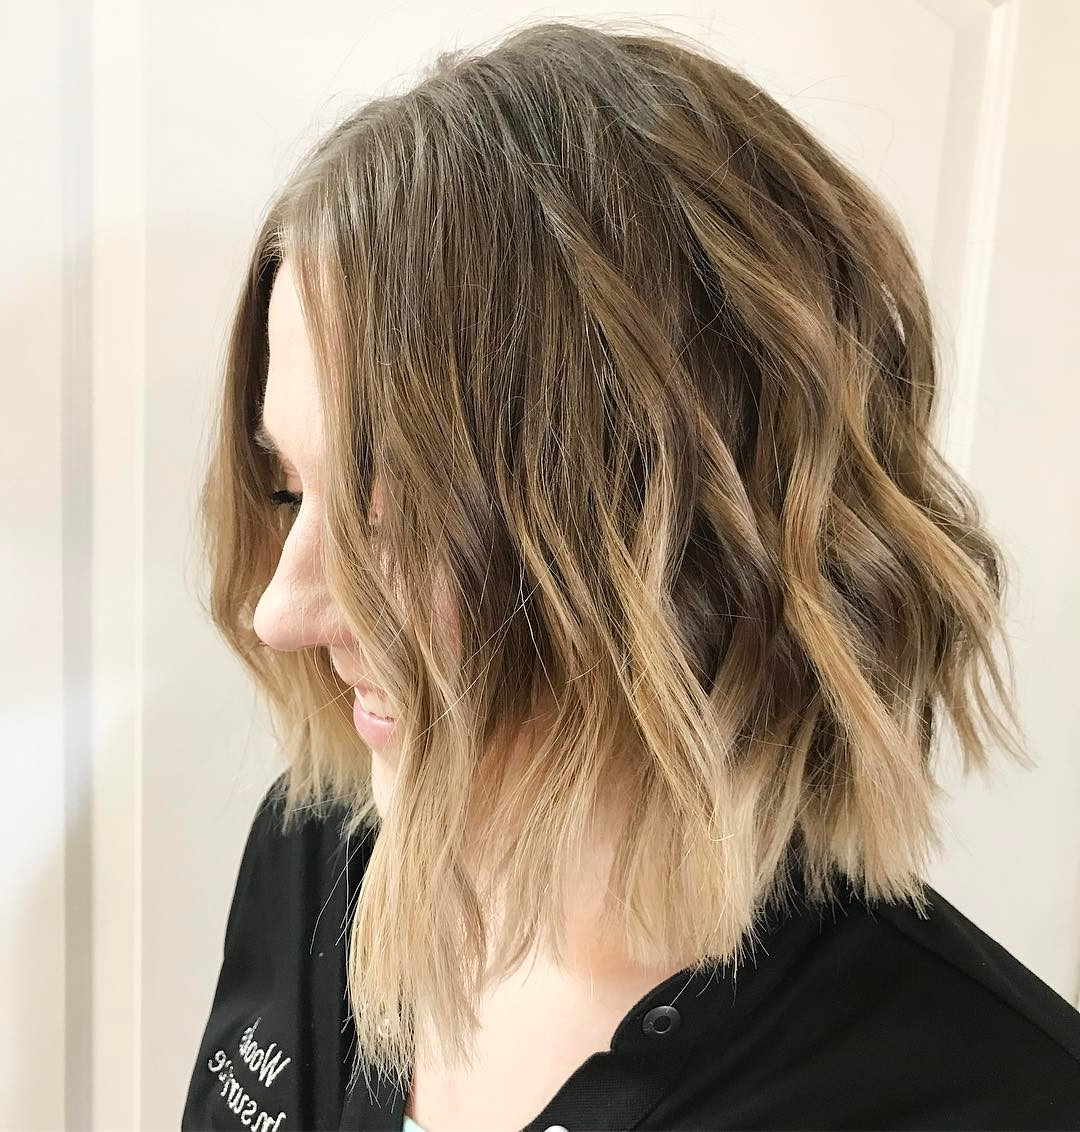 10 Beautiful Medium Bob Haircuts &edgy Looks: Shoulder Length Throughout Short Ash Blonde Bob Hairstyles With Feathered Bangs (View 1 of 20)